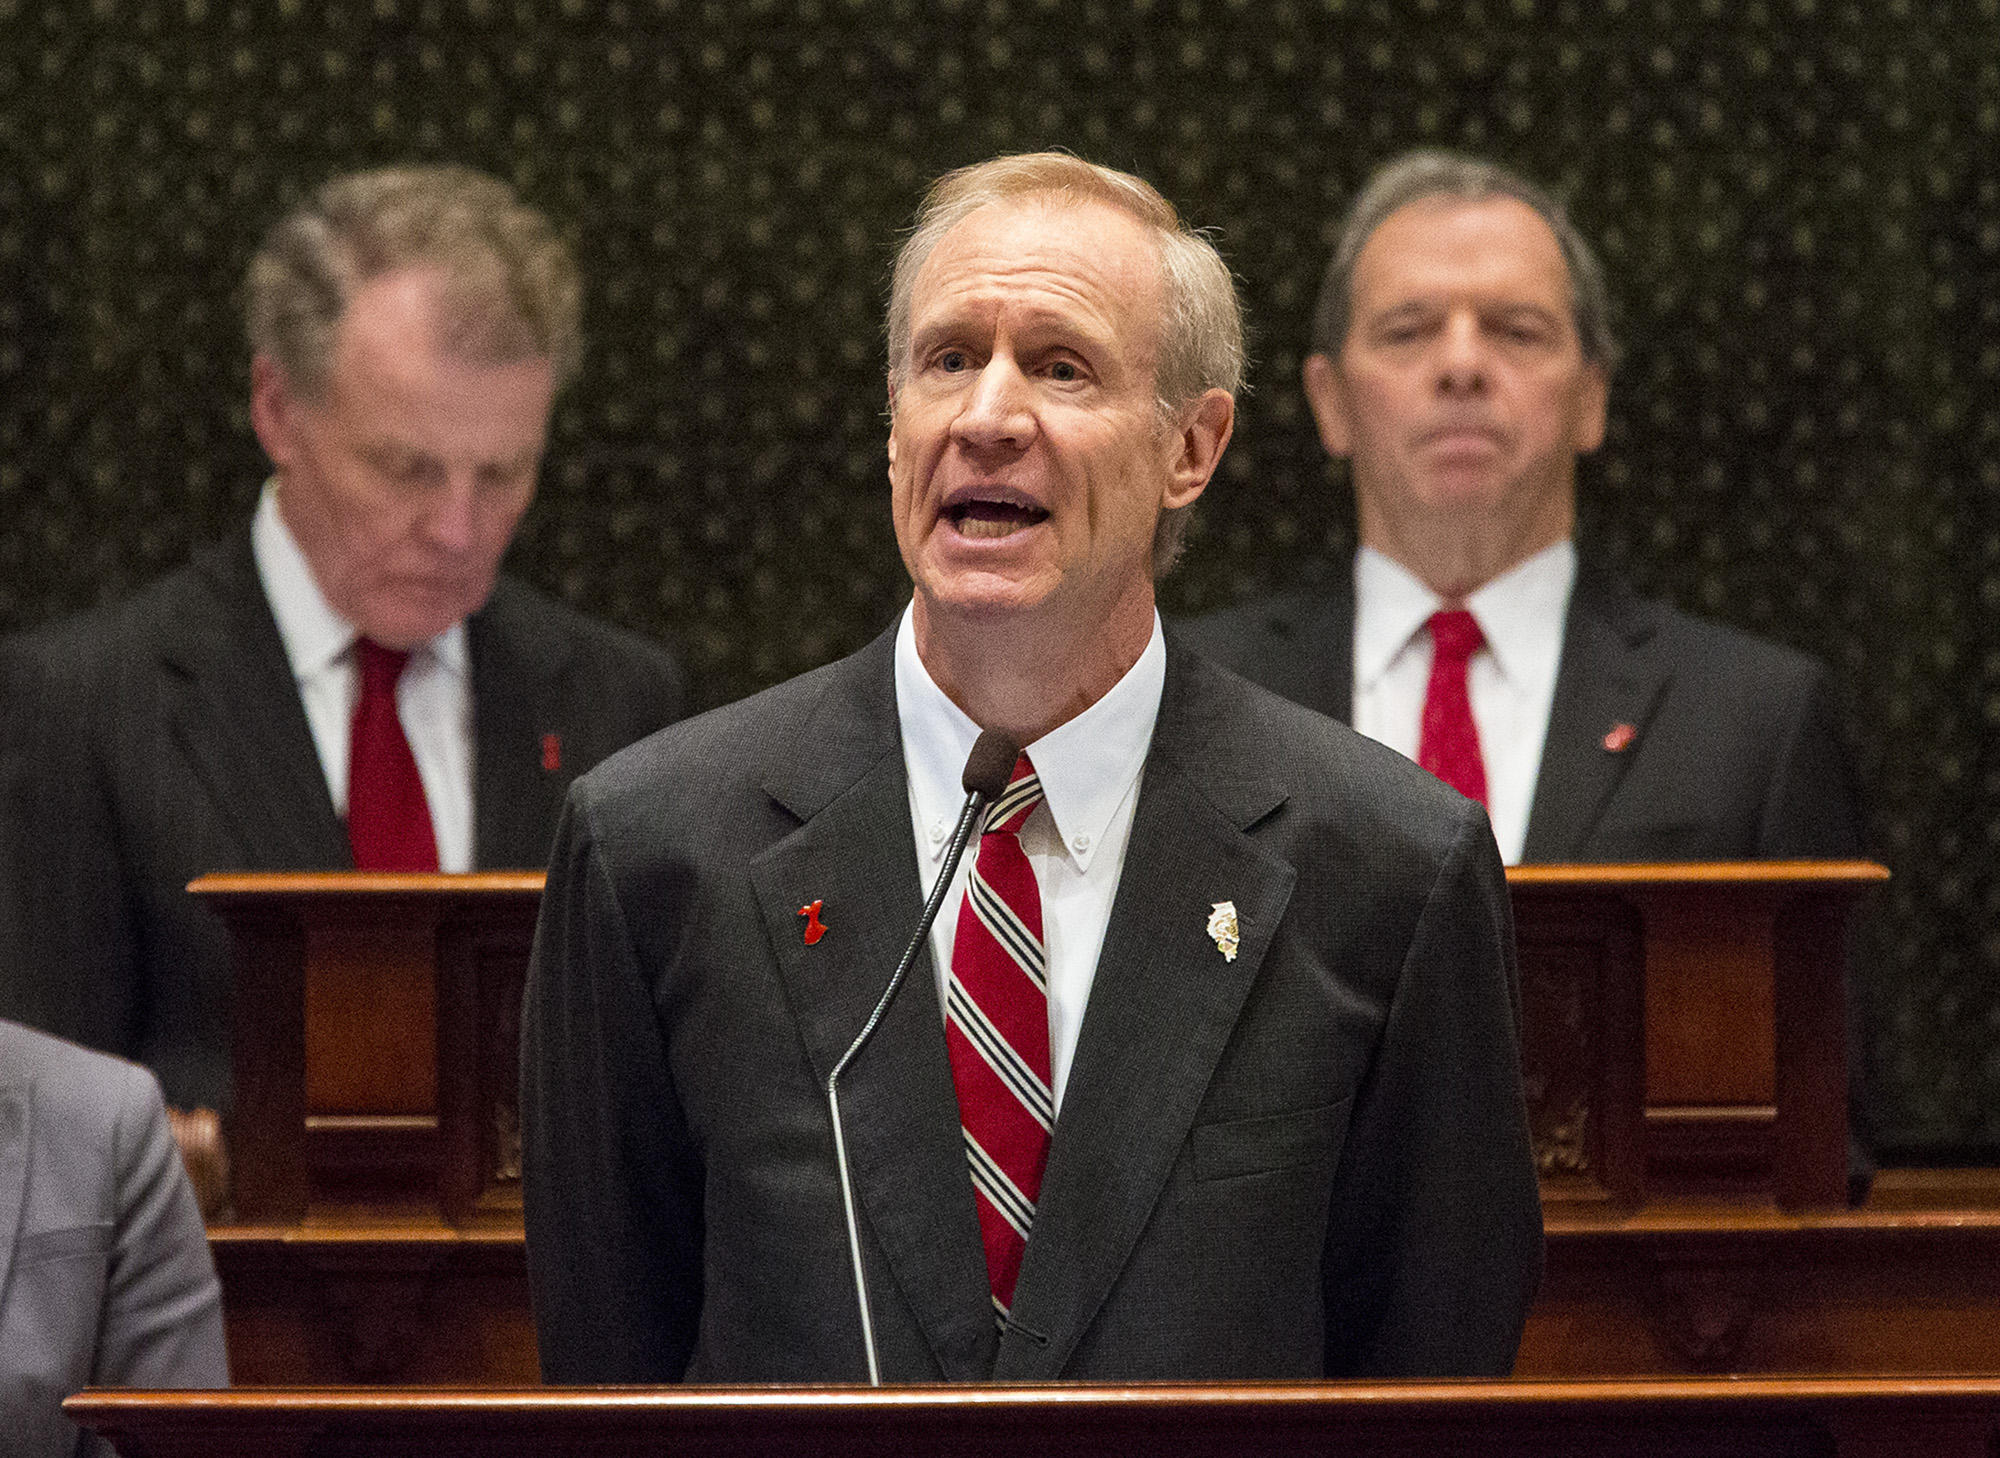 In Budget Speech, Rauner Pushes Tax Cut and Pension Shift